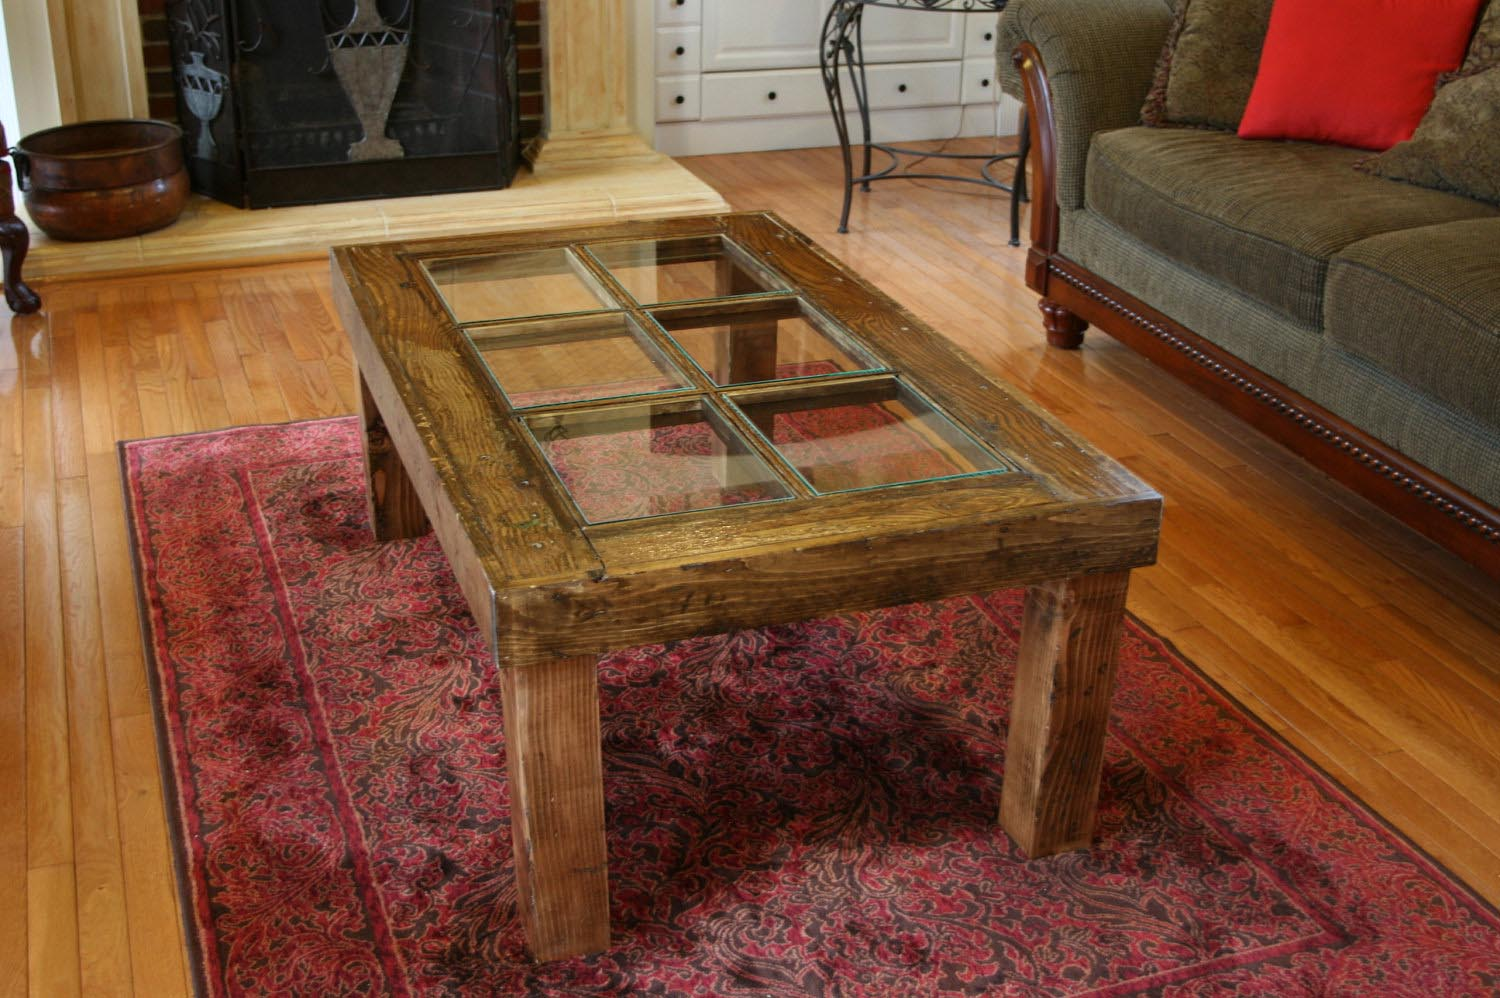 Antique Door Coffee Table - Antique Door Coffee Table Coffee Table Design Ideas